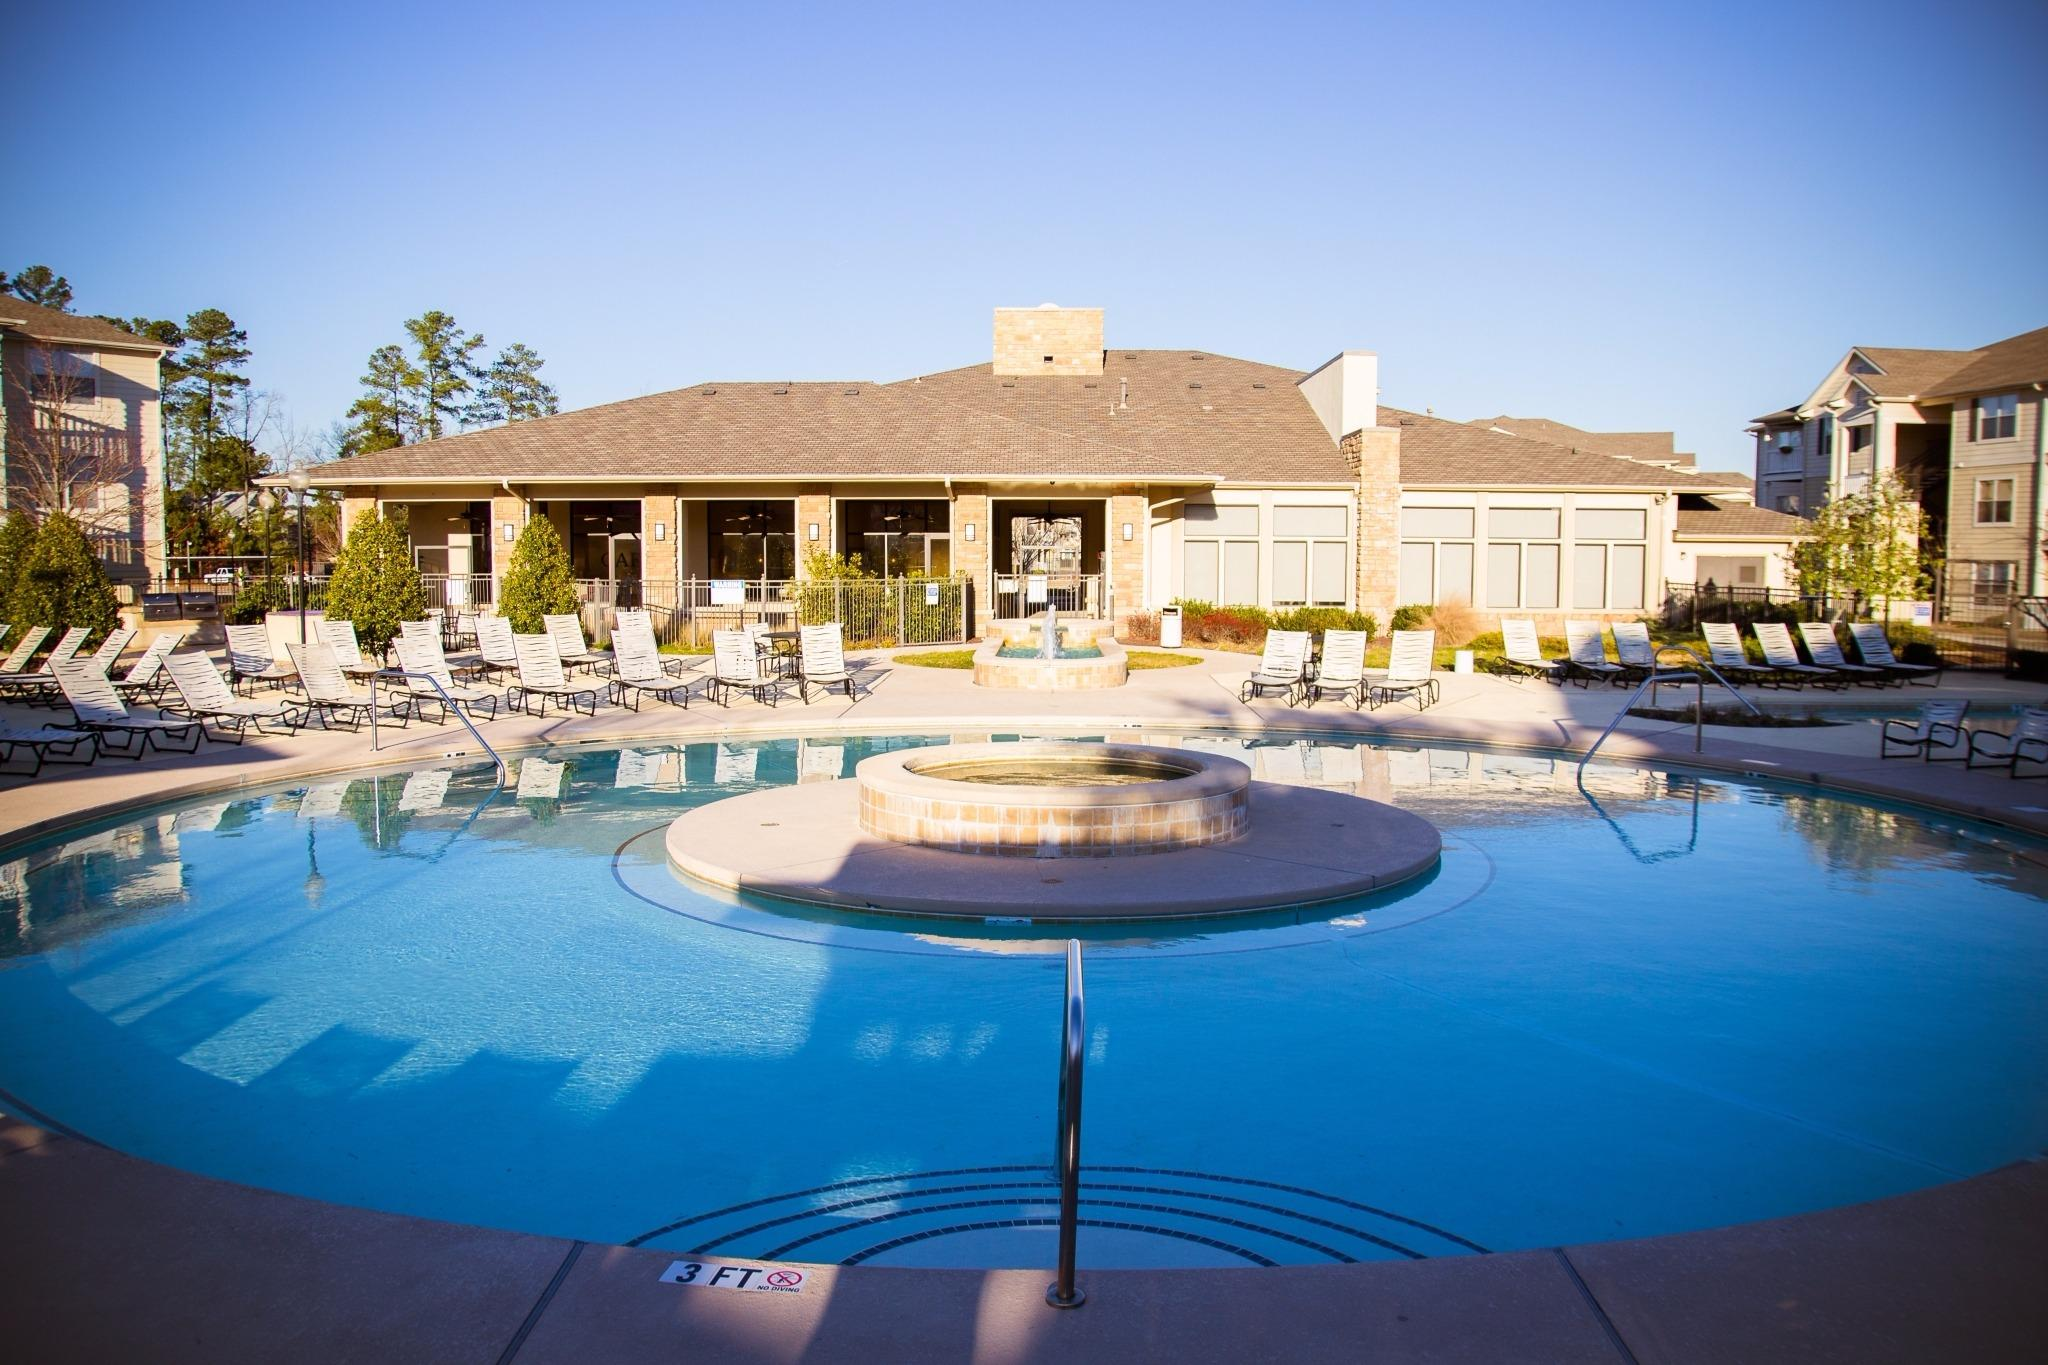 All Inclusive Apartments In Greenville Nc